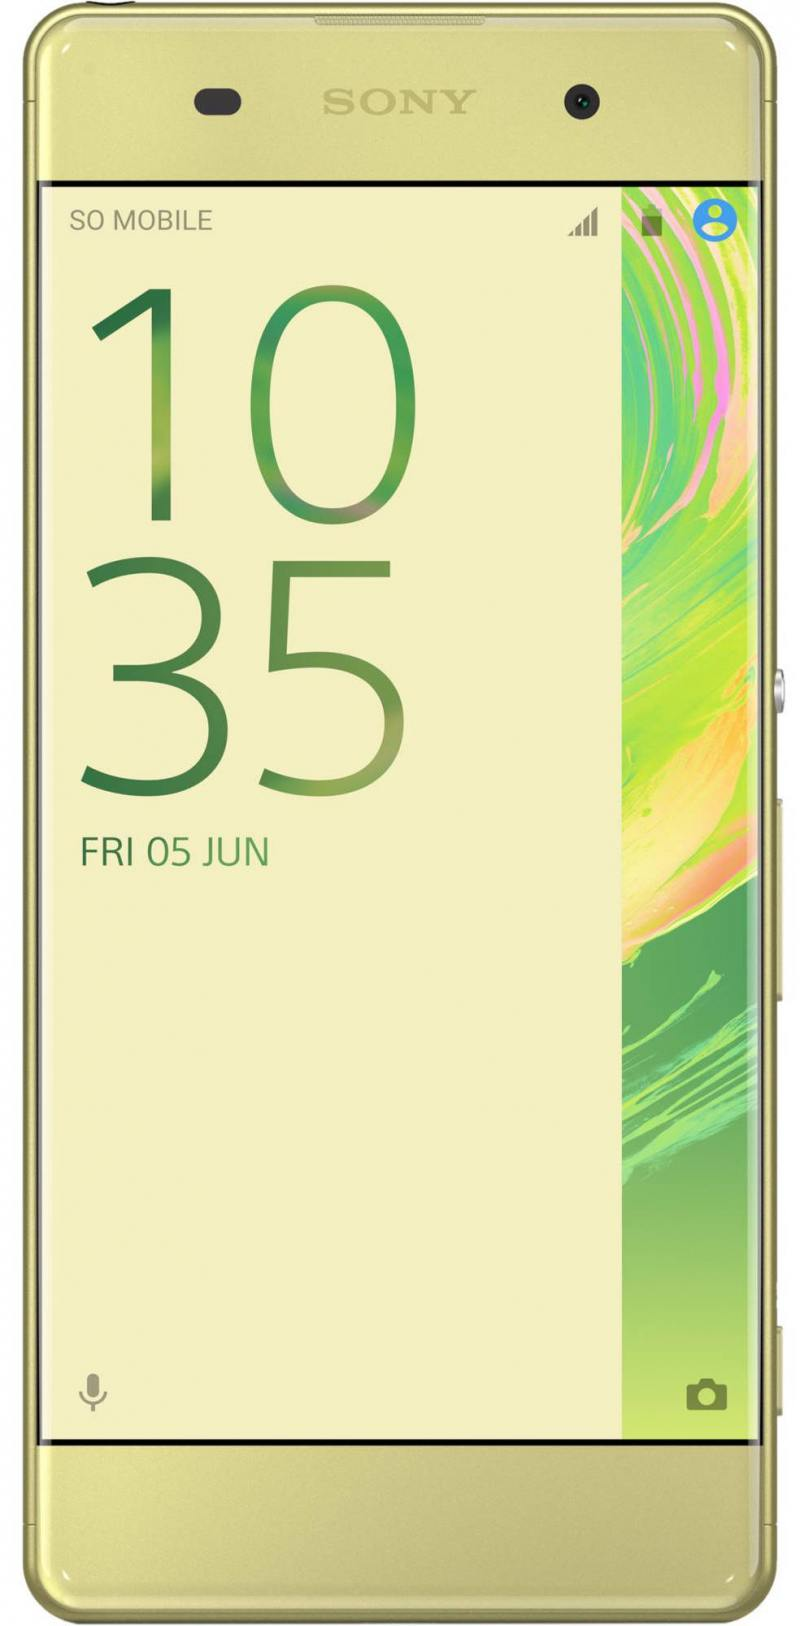 Смартфон SONY Xperia XA (F3111) Lime Gold MediaTek MT6755/2 Гб/16 Гб/5 (1280x720)/3G/4G/BT/Android 6.0 смартфон sony xperia x lime gold android 6 0 marshmallow msm8956 1800mhz 5 0 1920x1080 3072mb 32gb 4g lte [f5121lime gold]